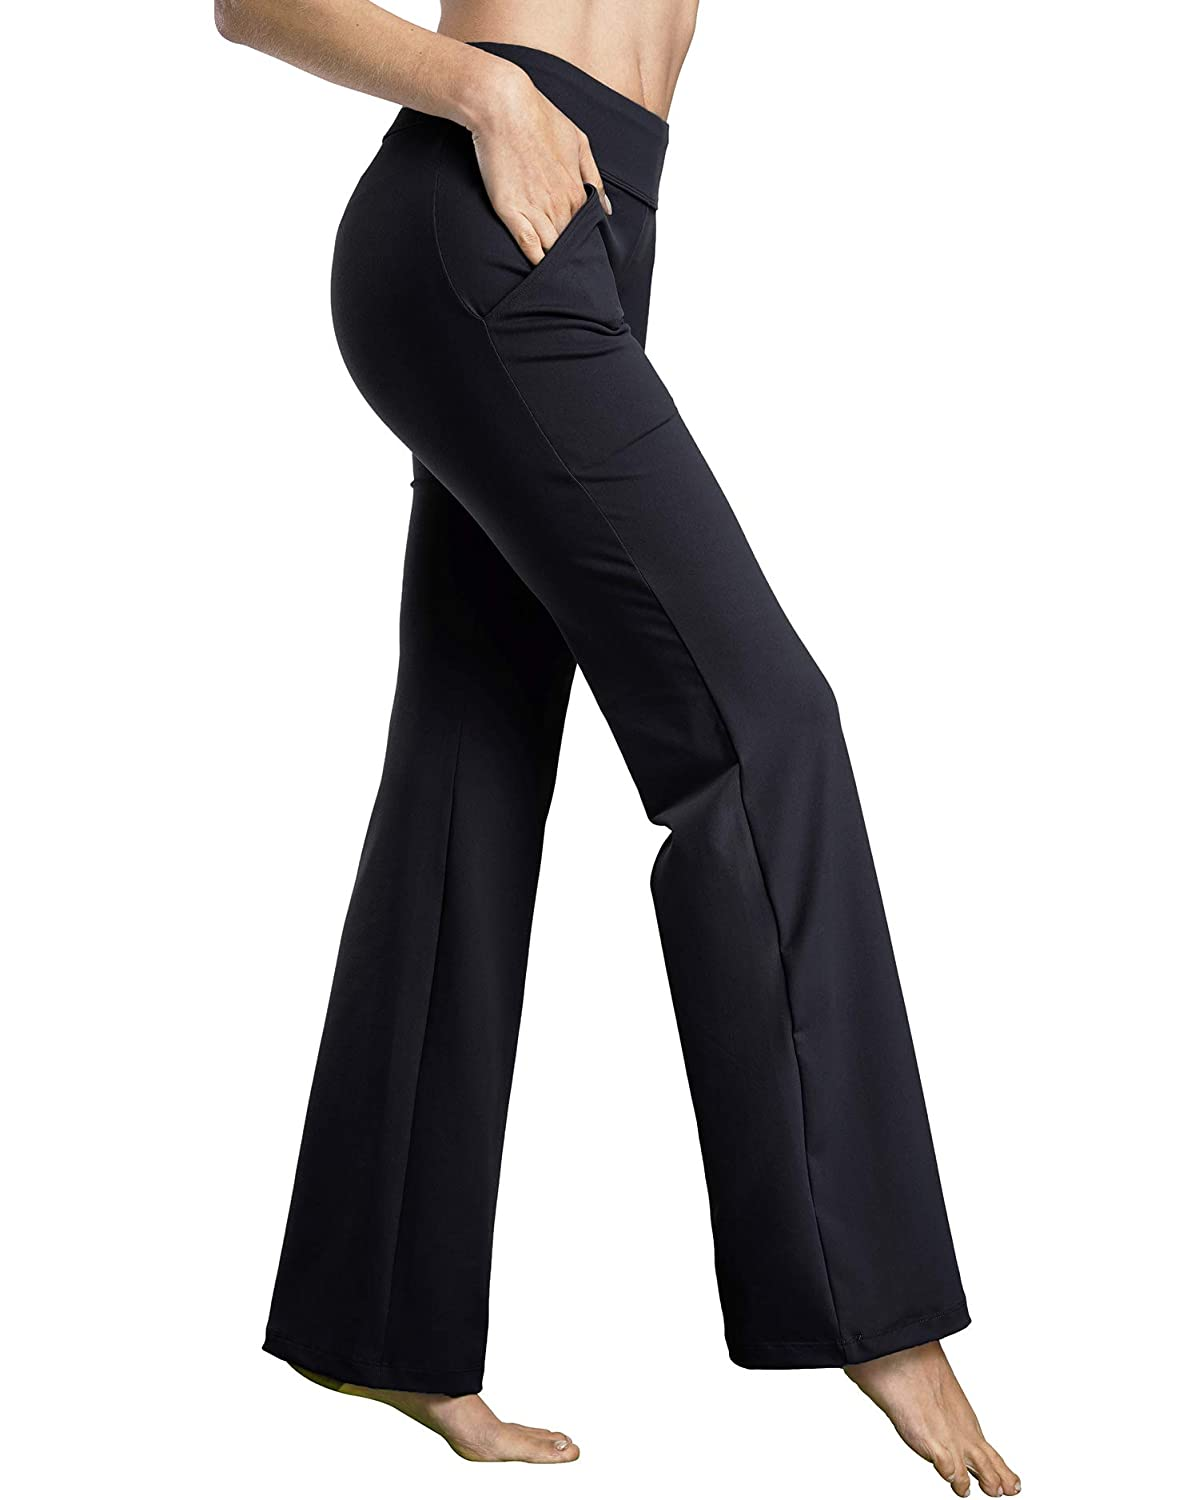 71853f43c Amazon.com: Bamans Womens Yoga Dress Pants Bootcut Leggings with Pockets  Petite to Plus Size Flared Stretch Workout Work Pants: Clothing